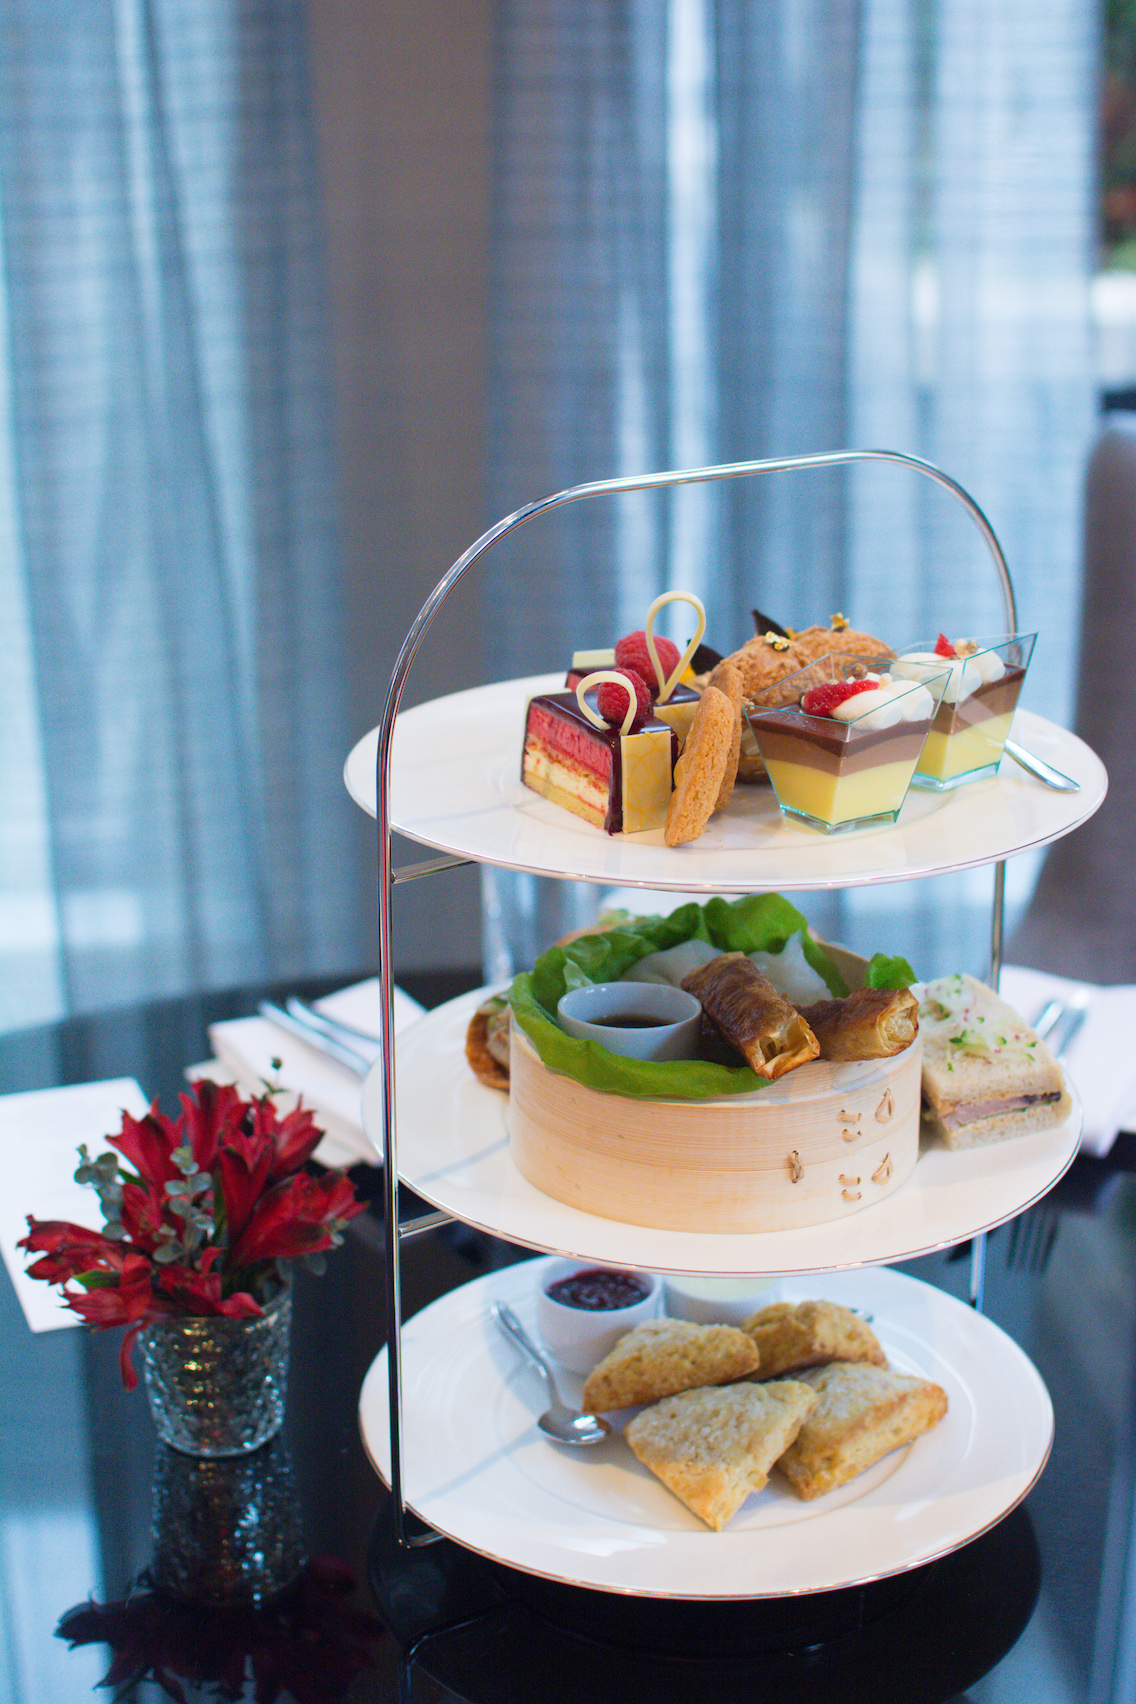 Waldorf Astoria Chinese Afternoon Tea 2016 30